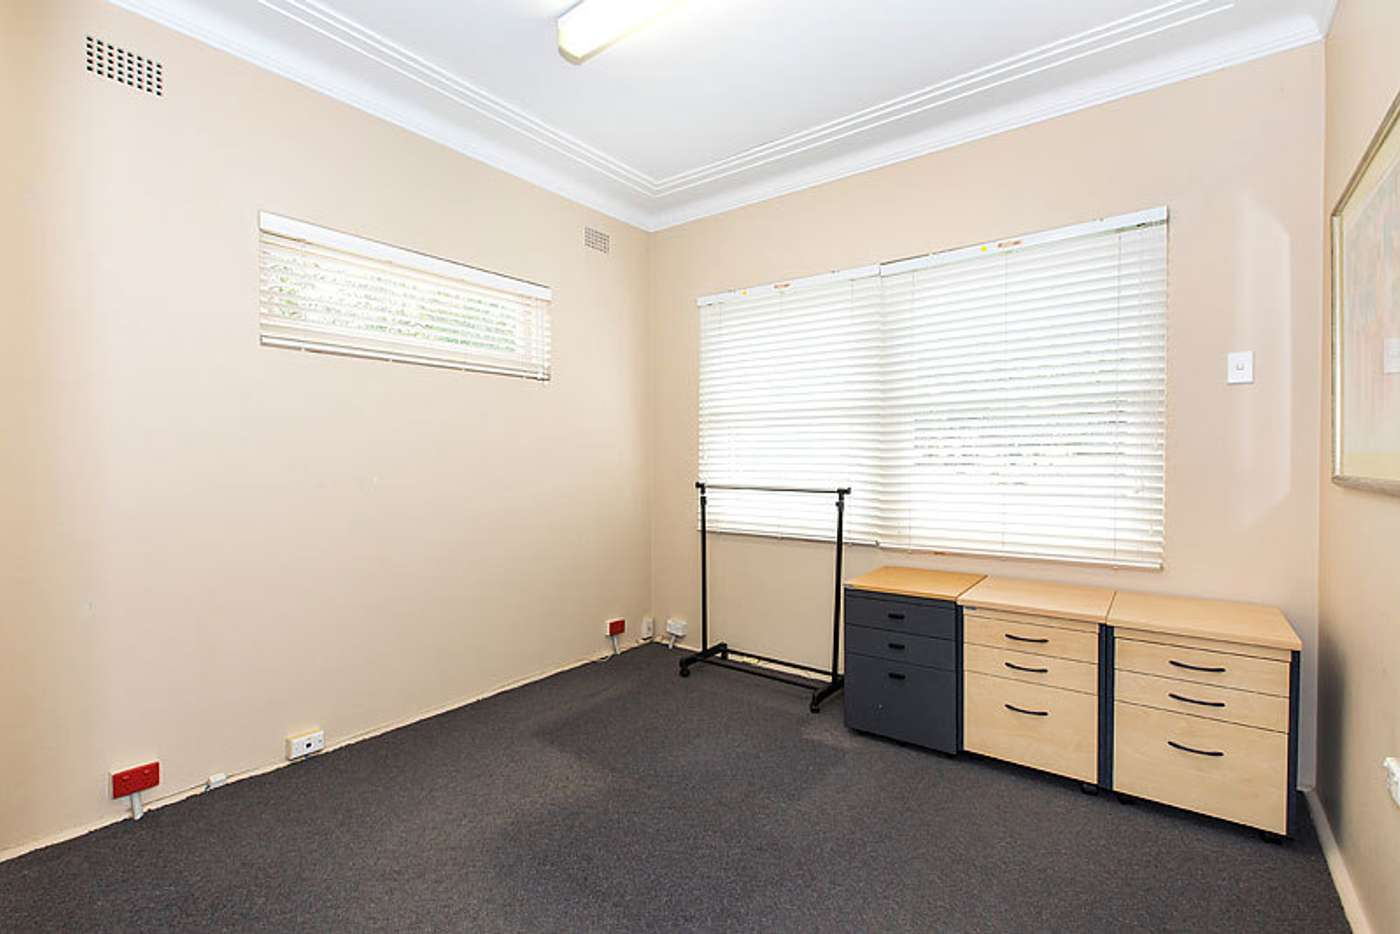 Fifth view of Homely house listing, 400 Kingsway, Caringbah NSW 2229